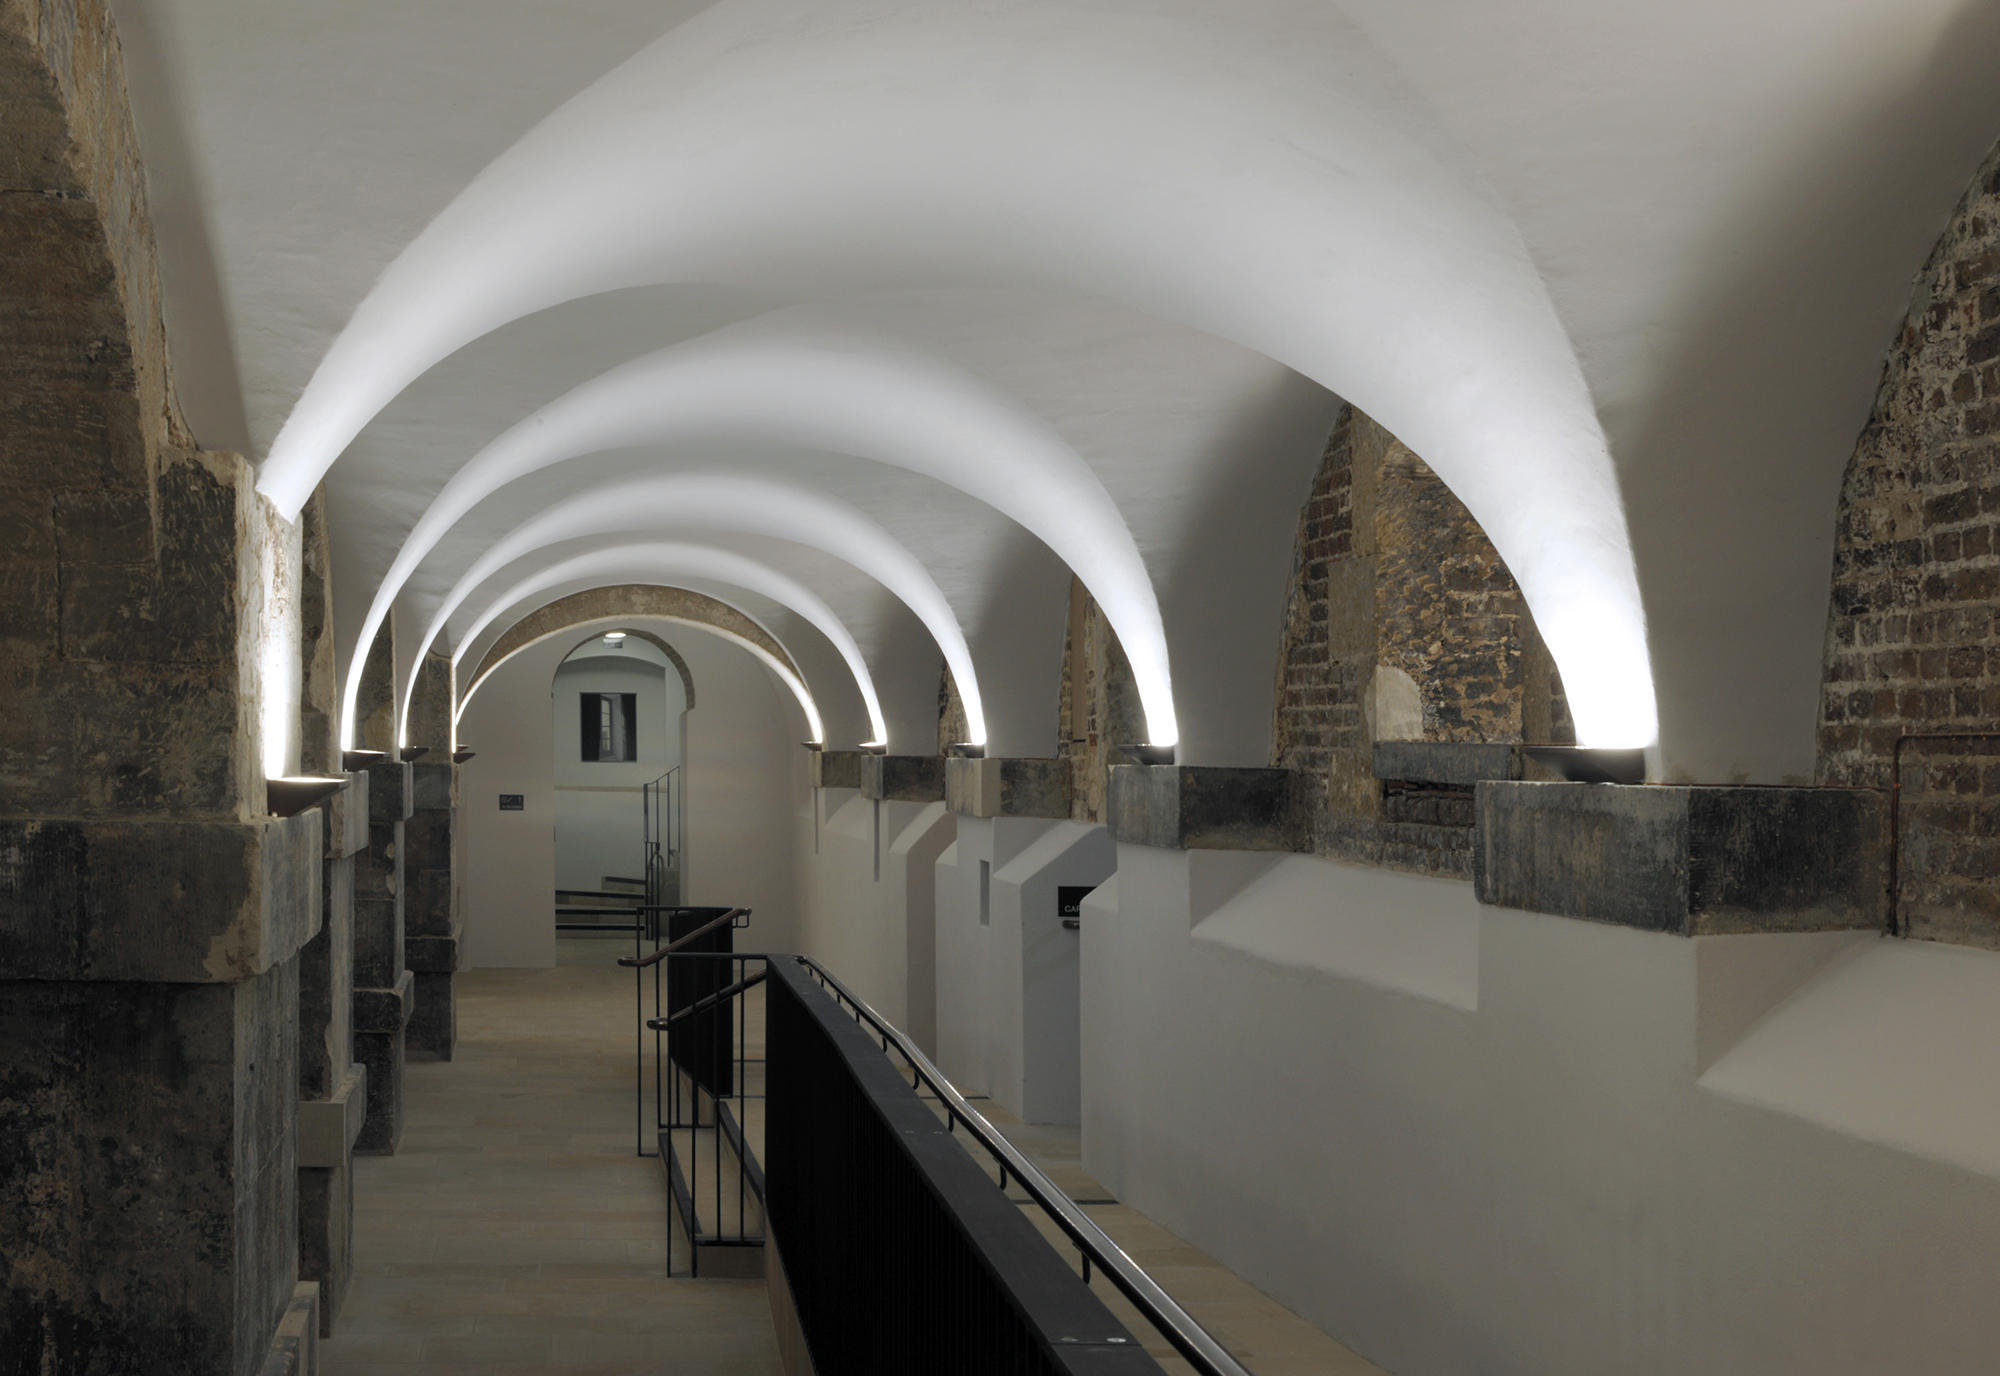 Dow Jones Christchurch Spitalfields Crypt DG 49